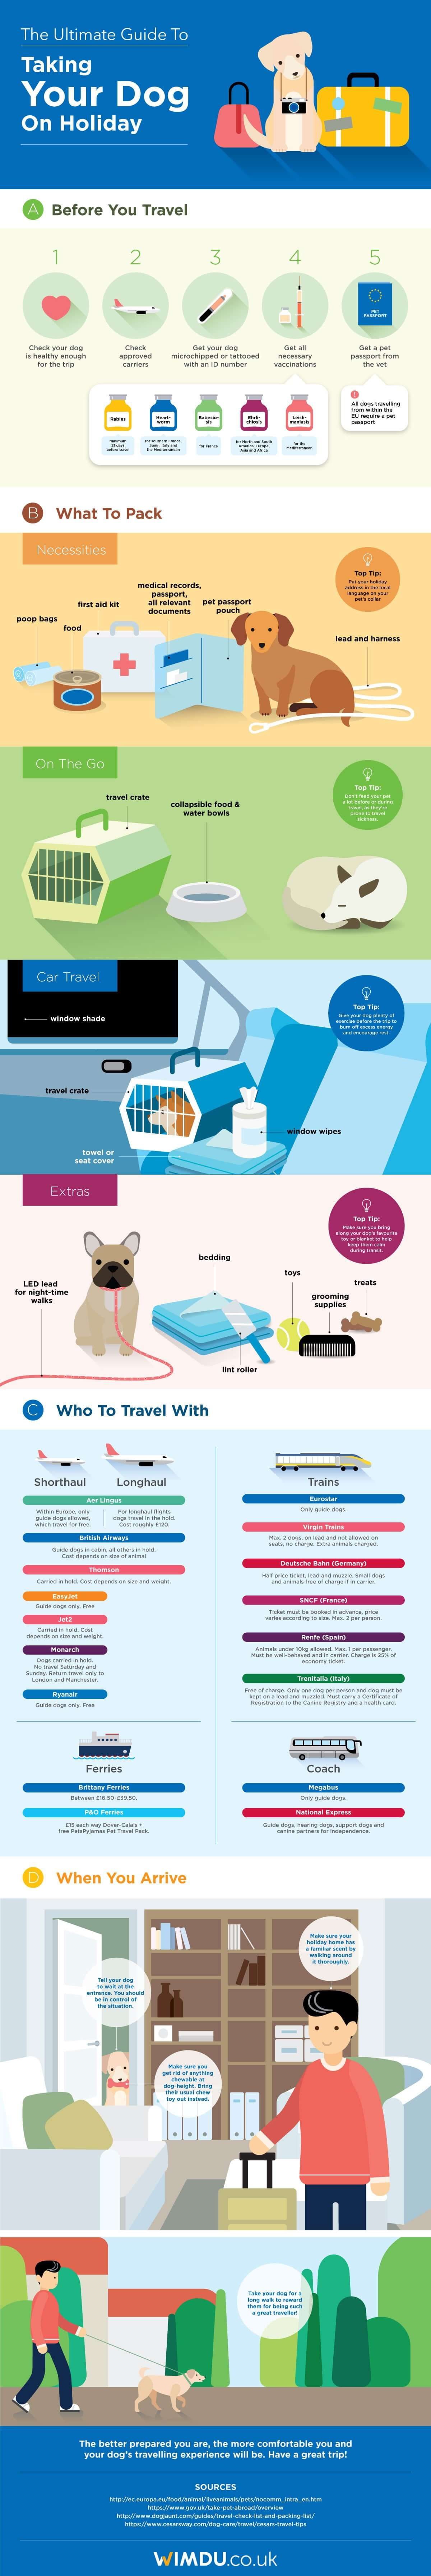 Can I Traveling With A Dog In Delta Airlines